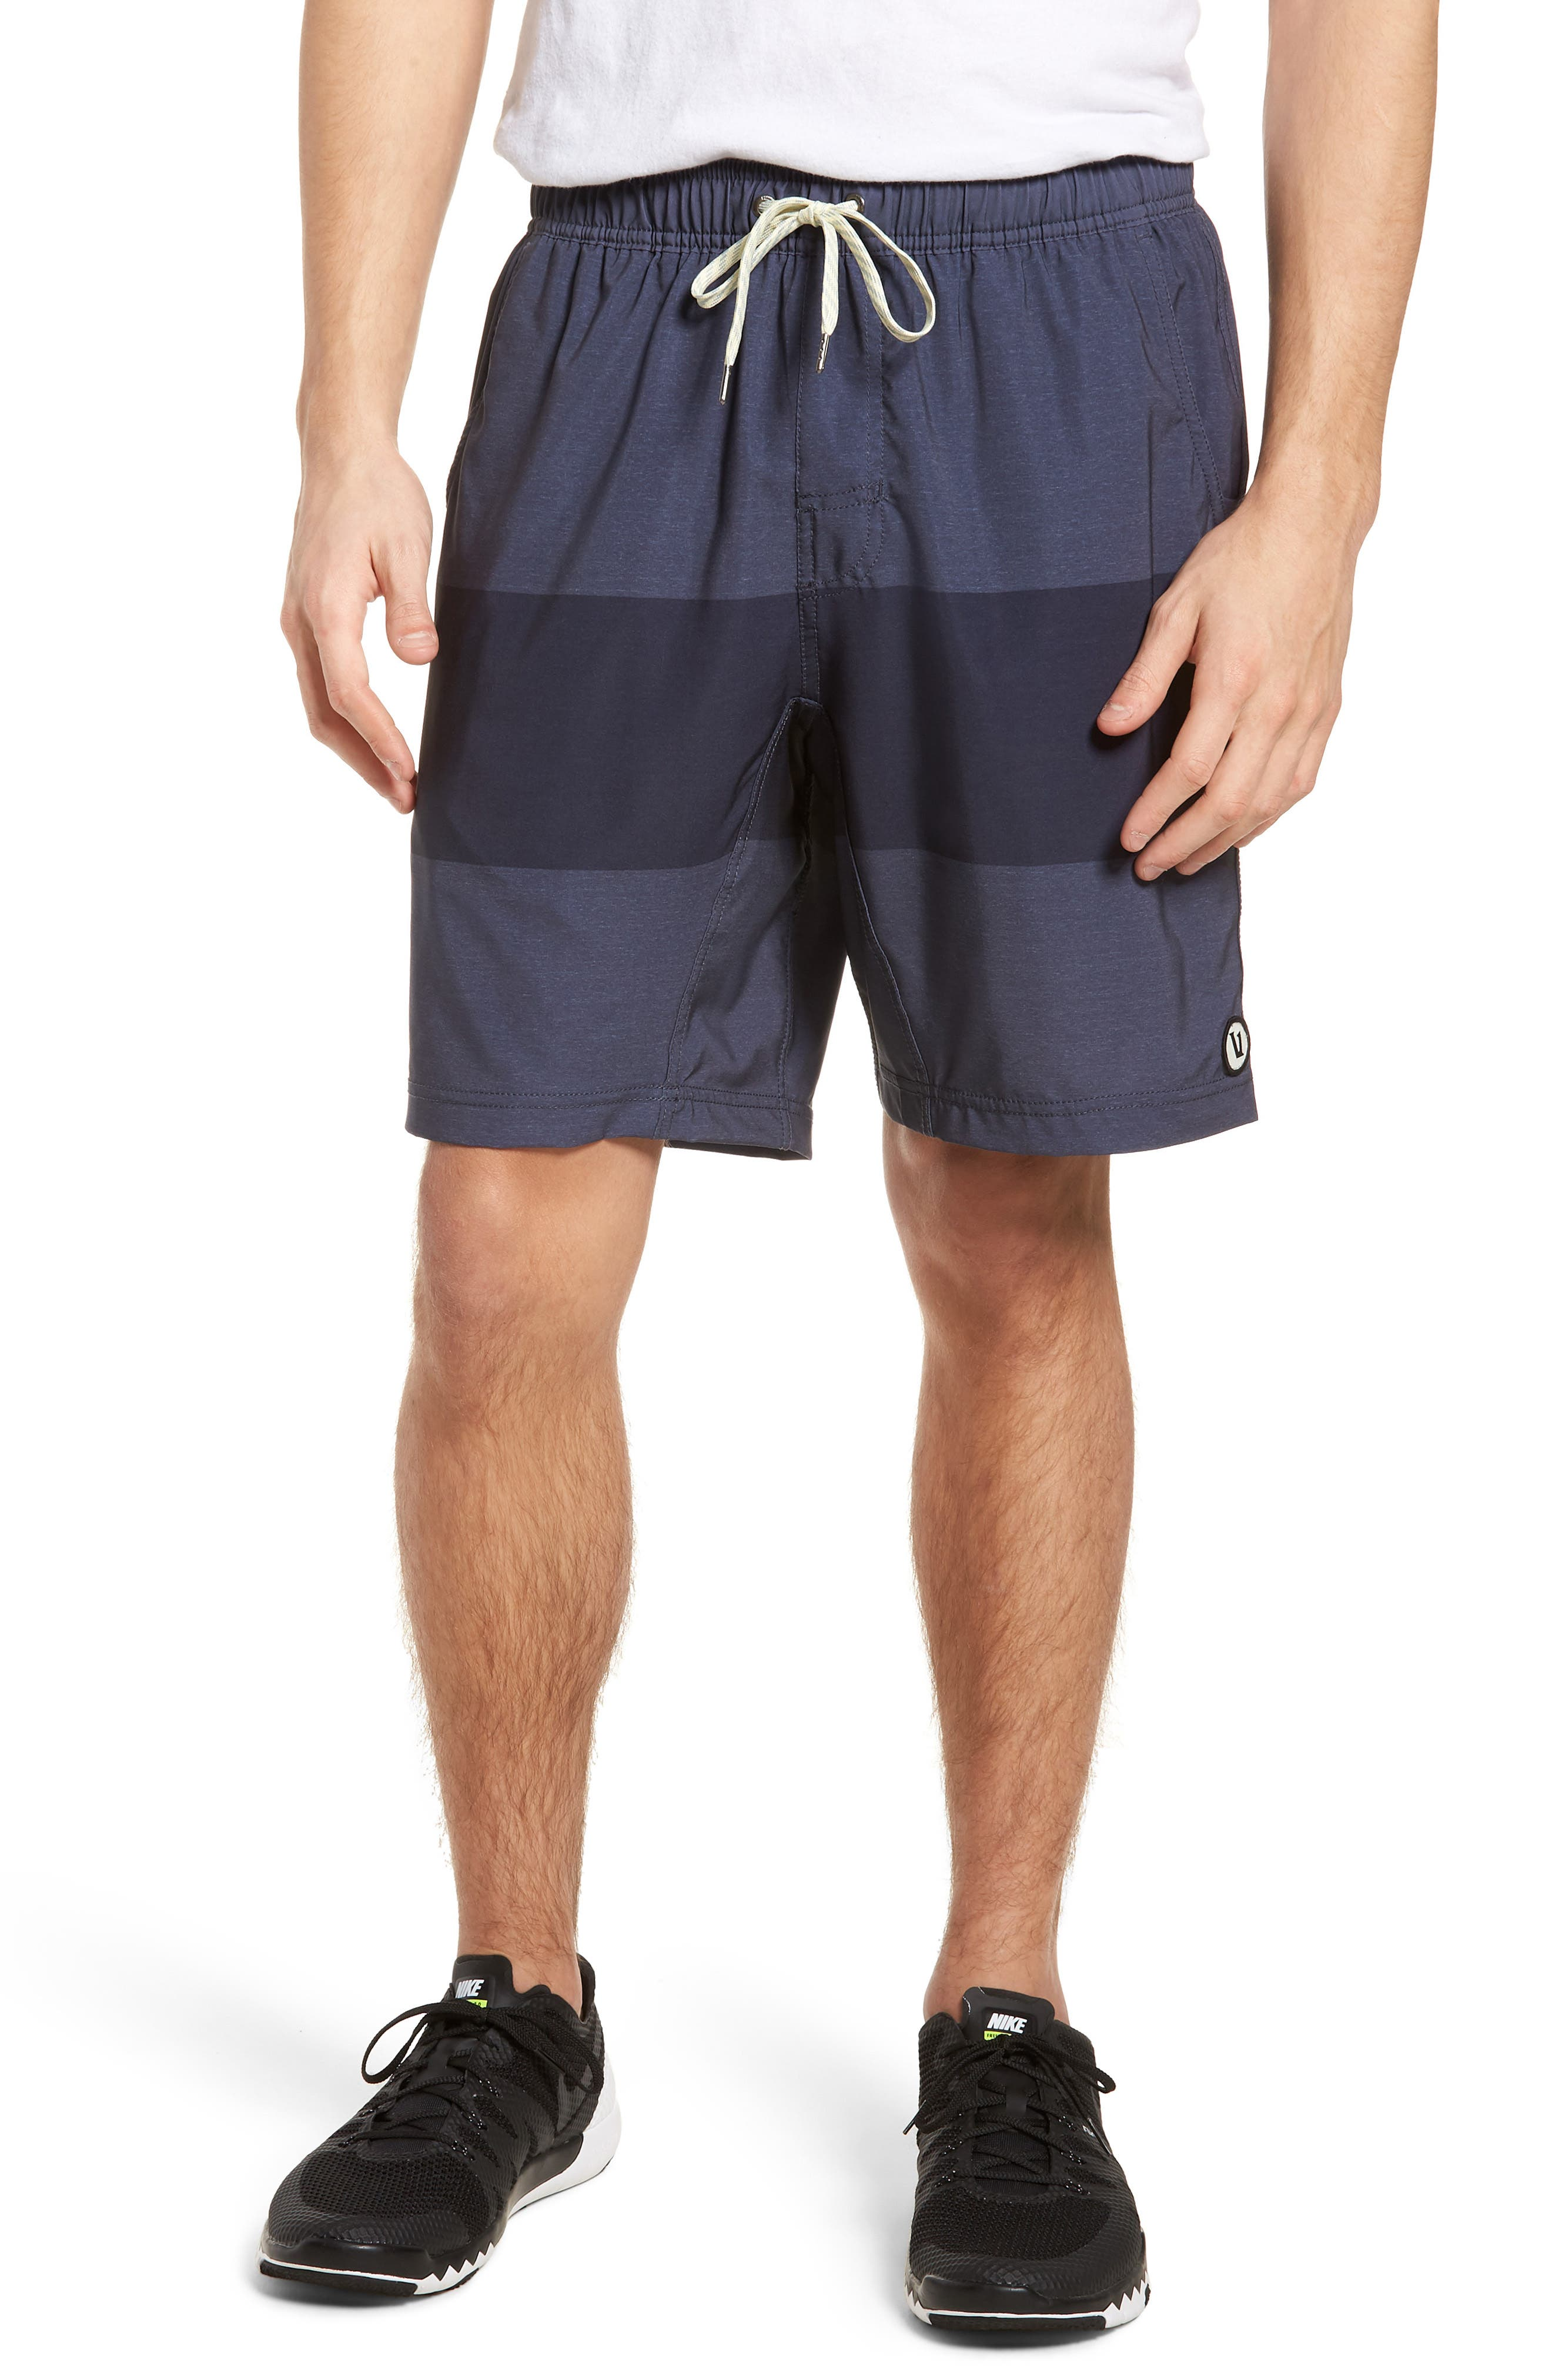 Kore Shorts,                             Main thumbnail 1, color,                             Navy Texture Block